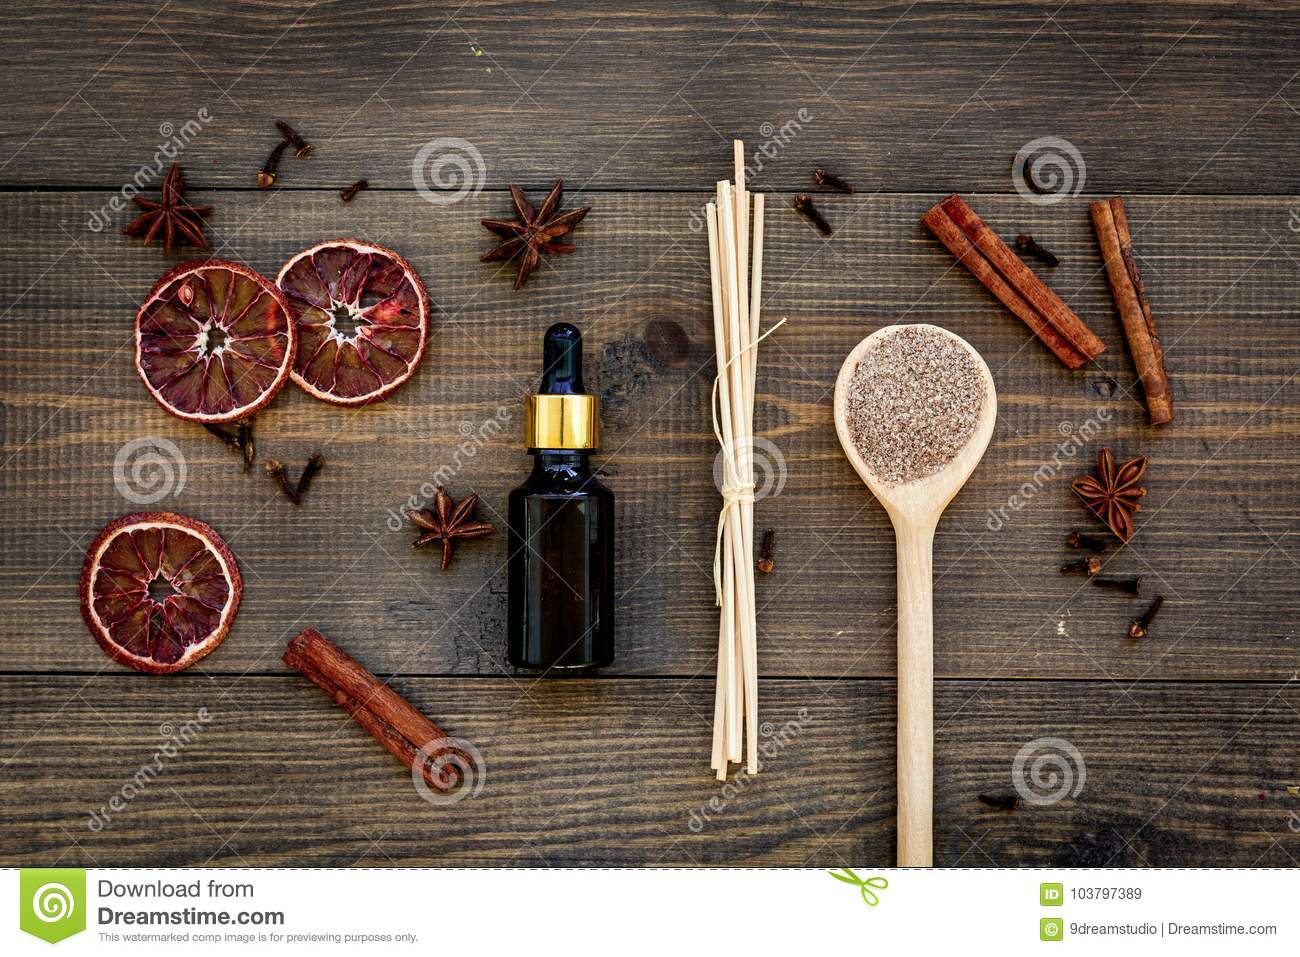 Skin care and relax. Cosmetics and aromatherapy concept. Spa salt and oil with spices cinnamon on dark wooden background